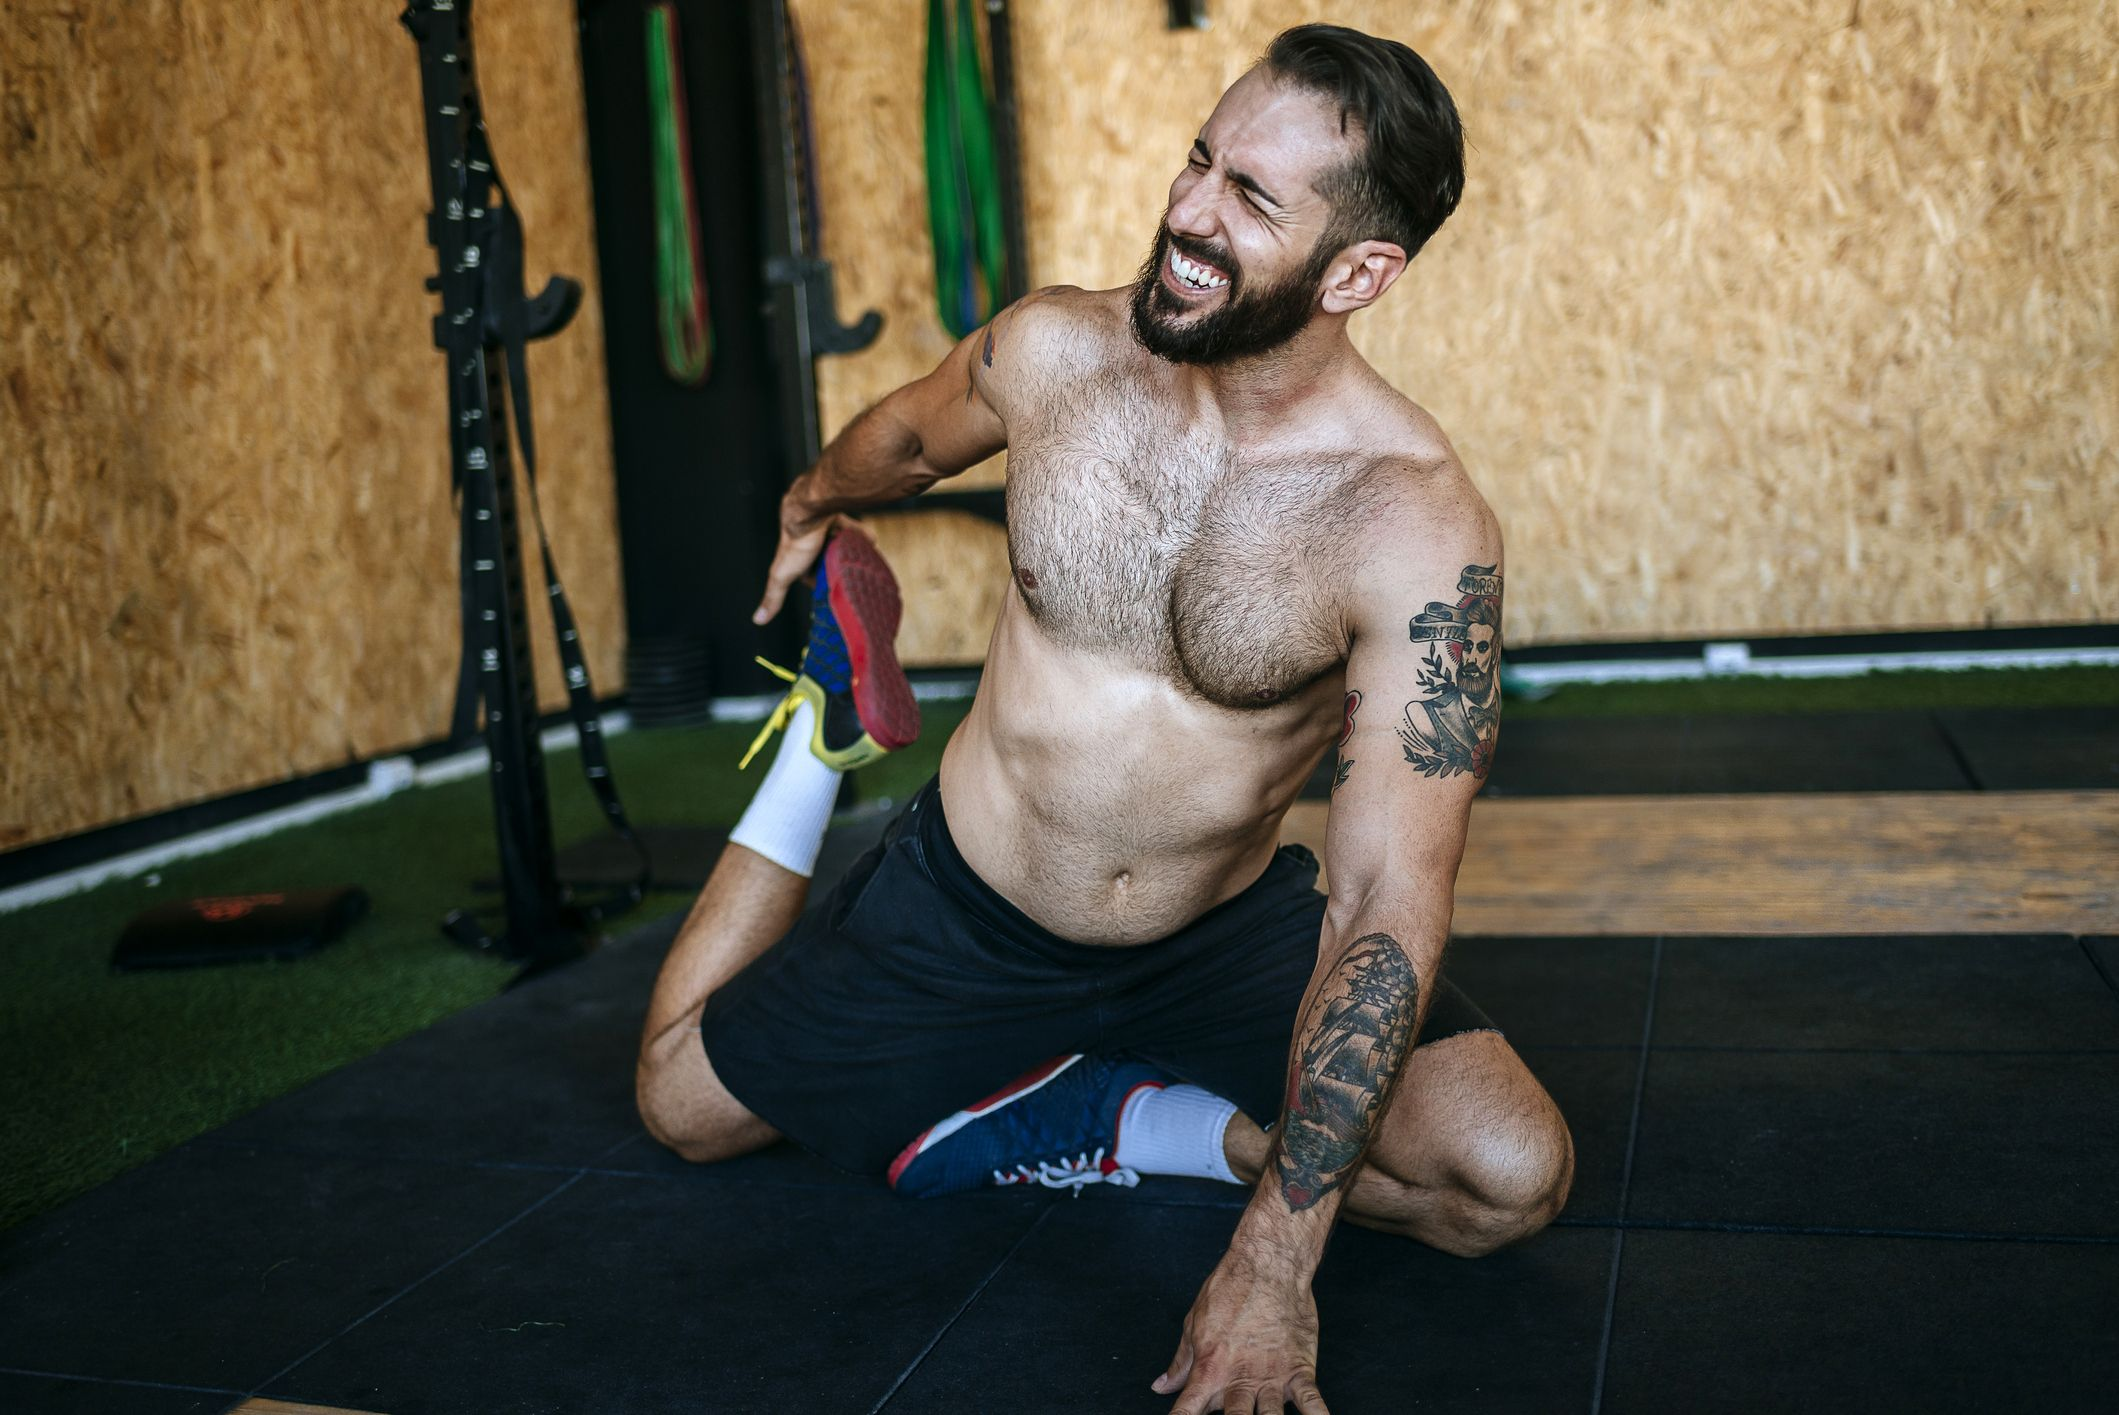 The Beginner's Guide to Mobility & Stretching